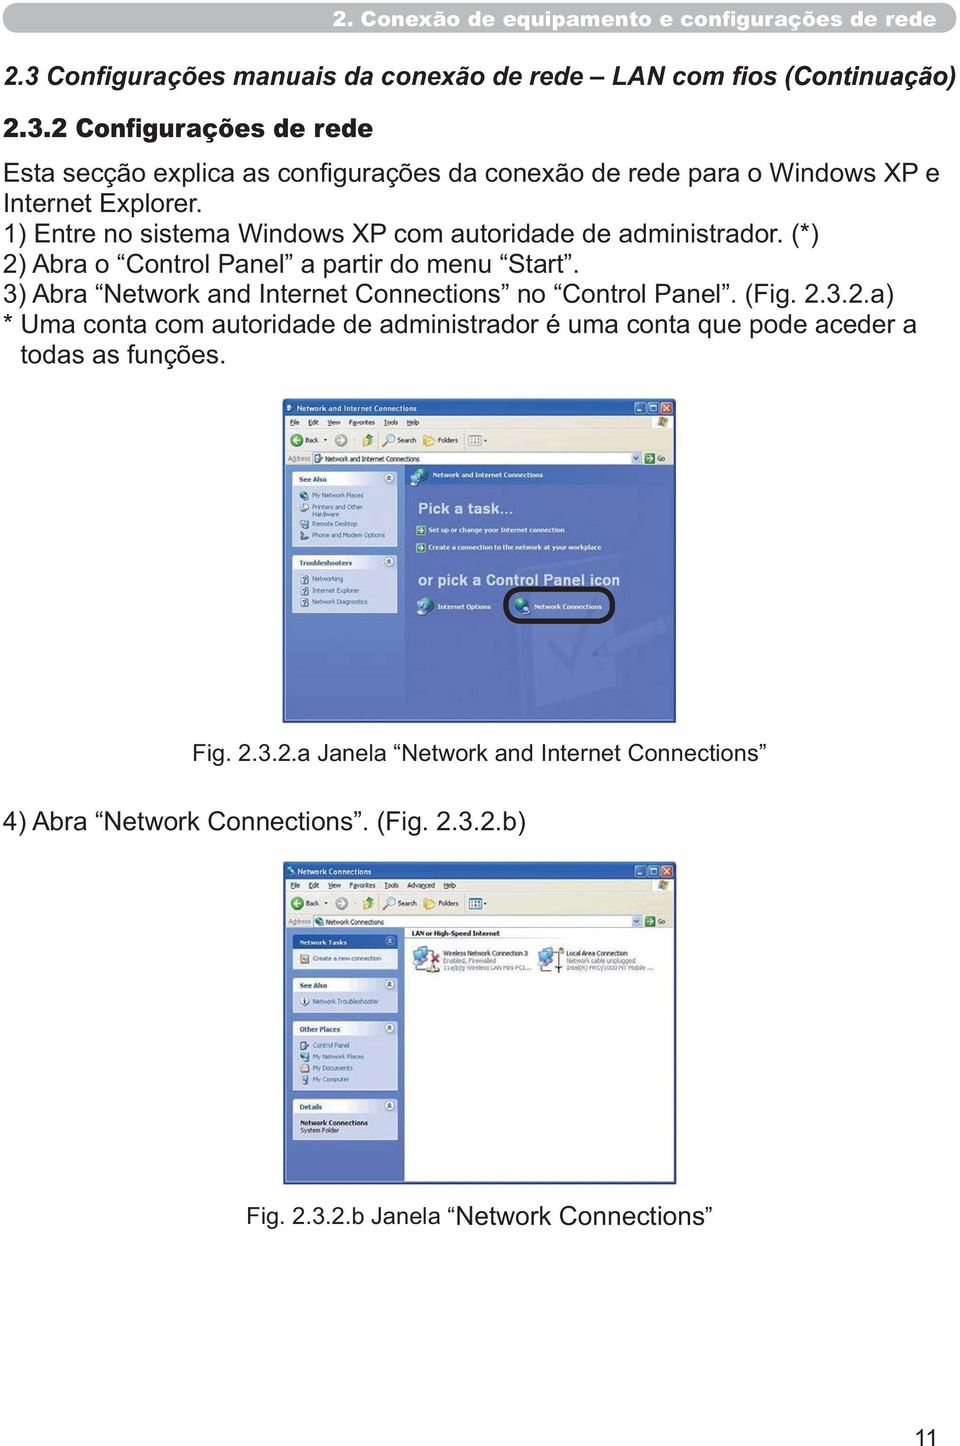 3) Abra Network and Internet Connections no Control Panel. (Fig. 2.